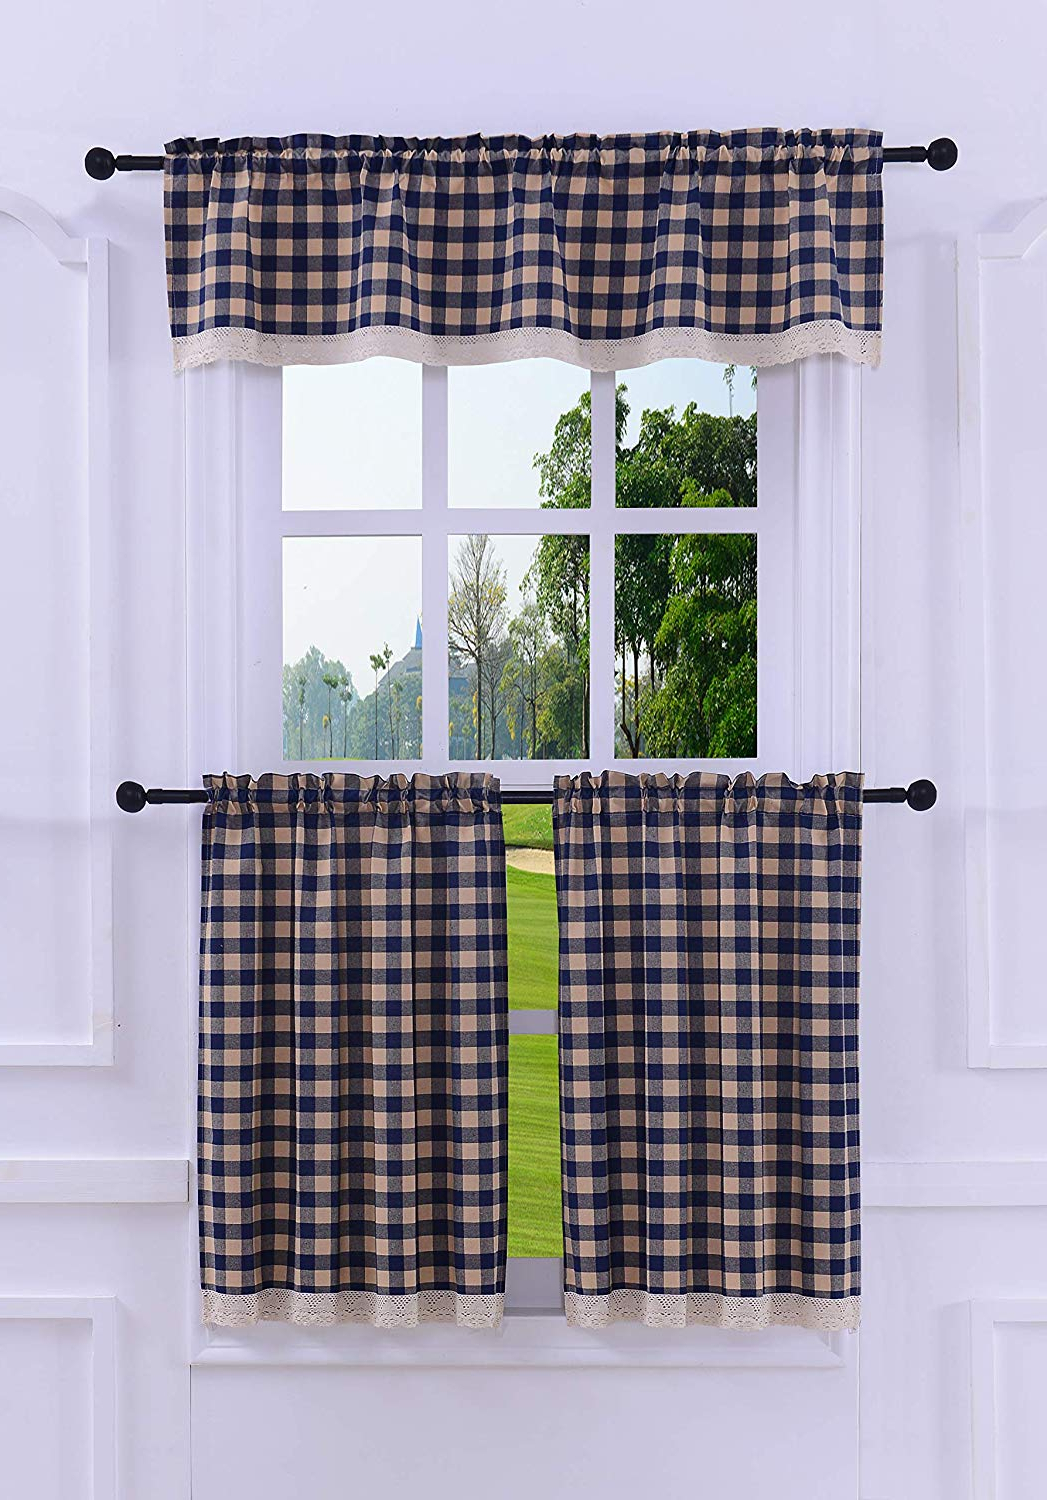 Cotton Blend Grey Kitchen Curtain Tiers Pertaining To 2020 3 Pieces Kitchen Curtain Tier And Valance Set Checkered Cotton Blend Navy  Blue (View 8 of 20)